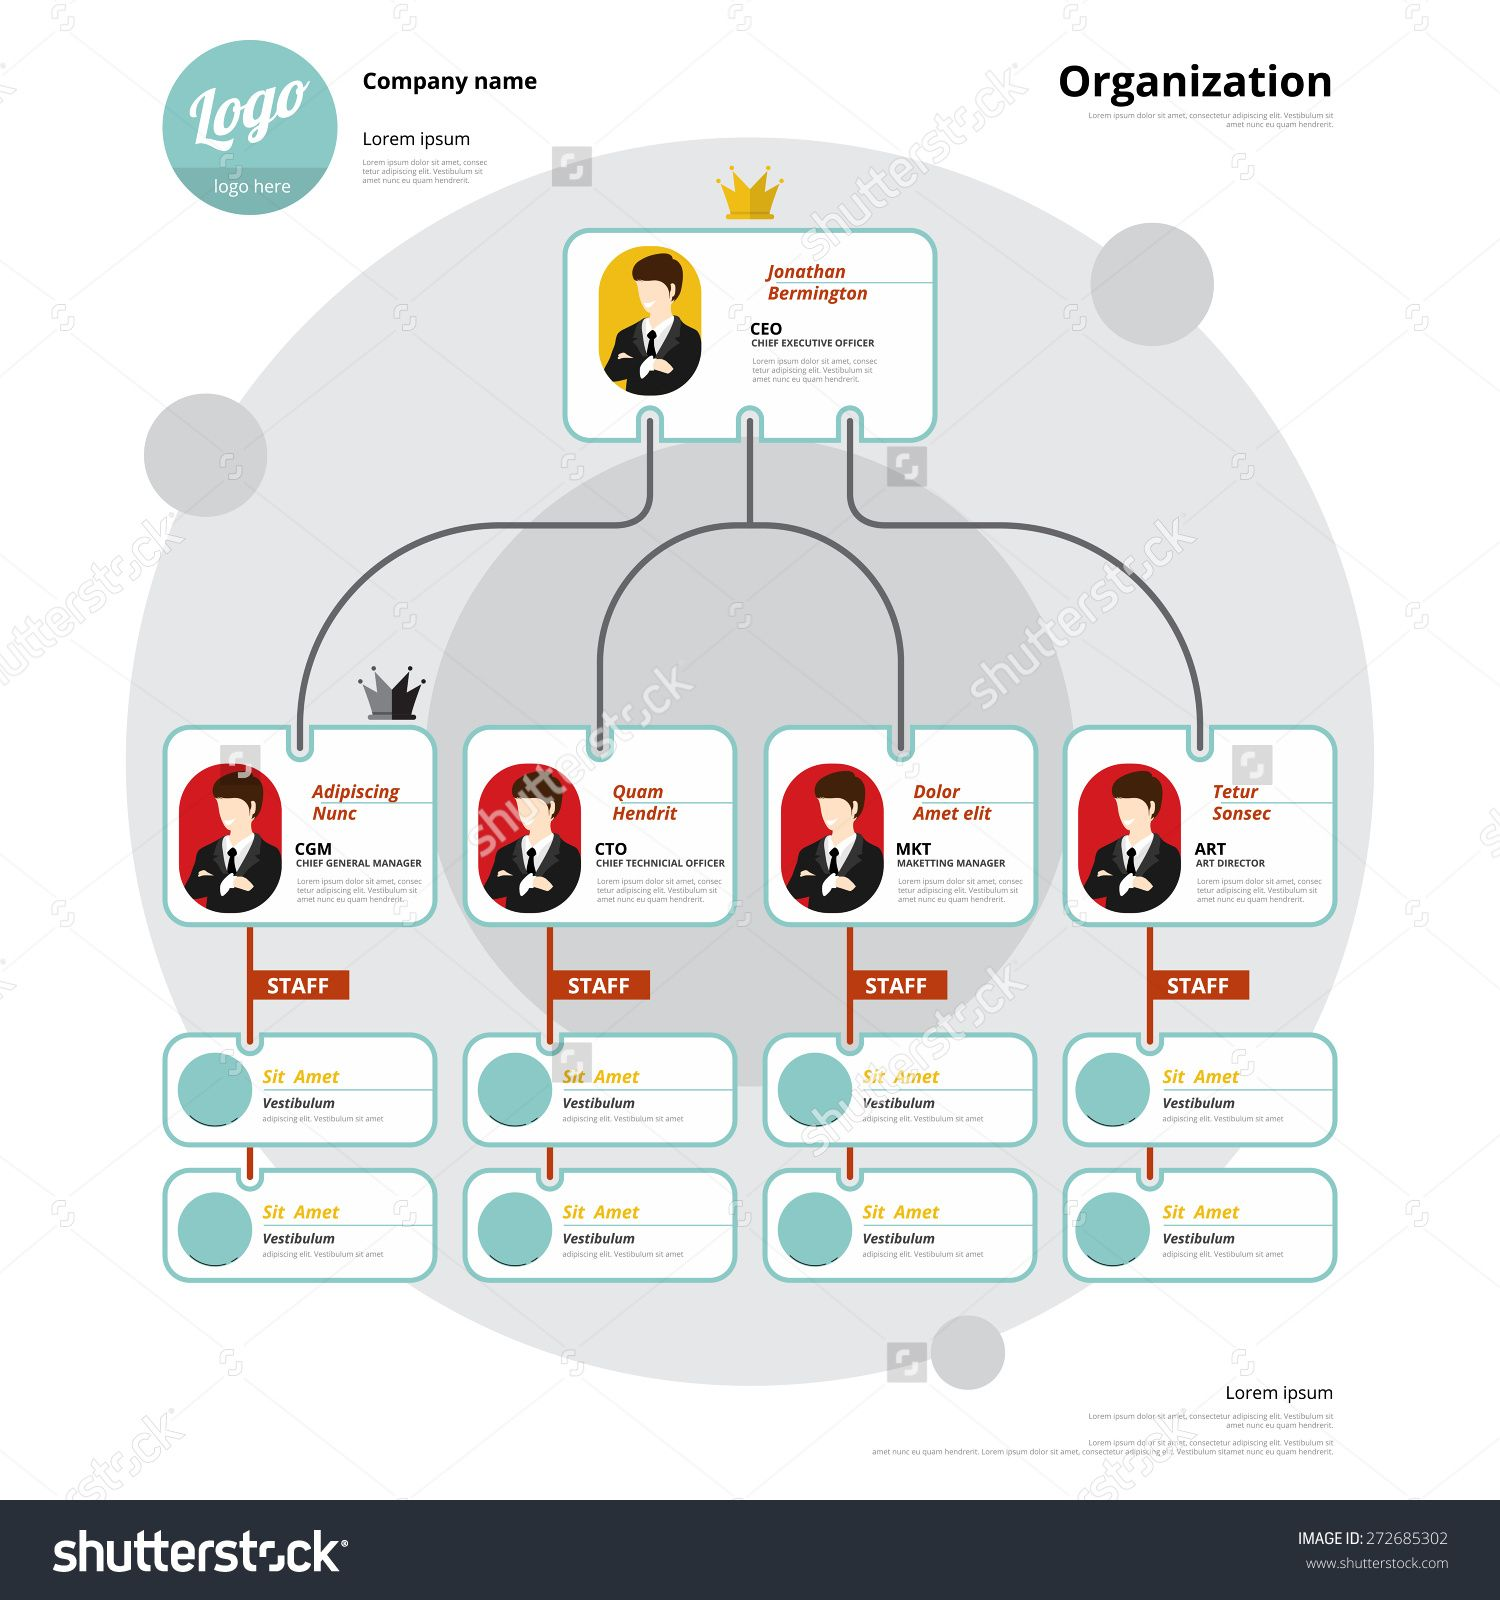 Organization Chart Coporate Structure Flow Of Organizational Vector Illustration Organization Chart Organizational Chart Organizational